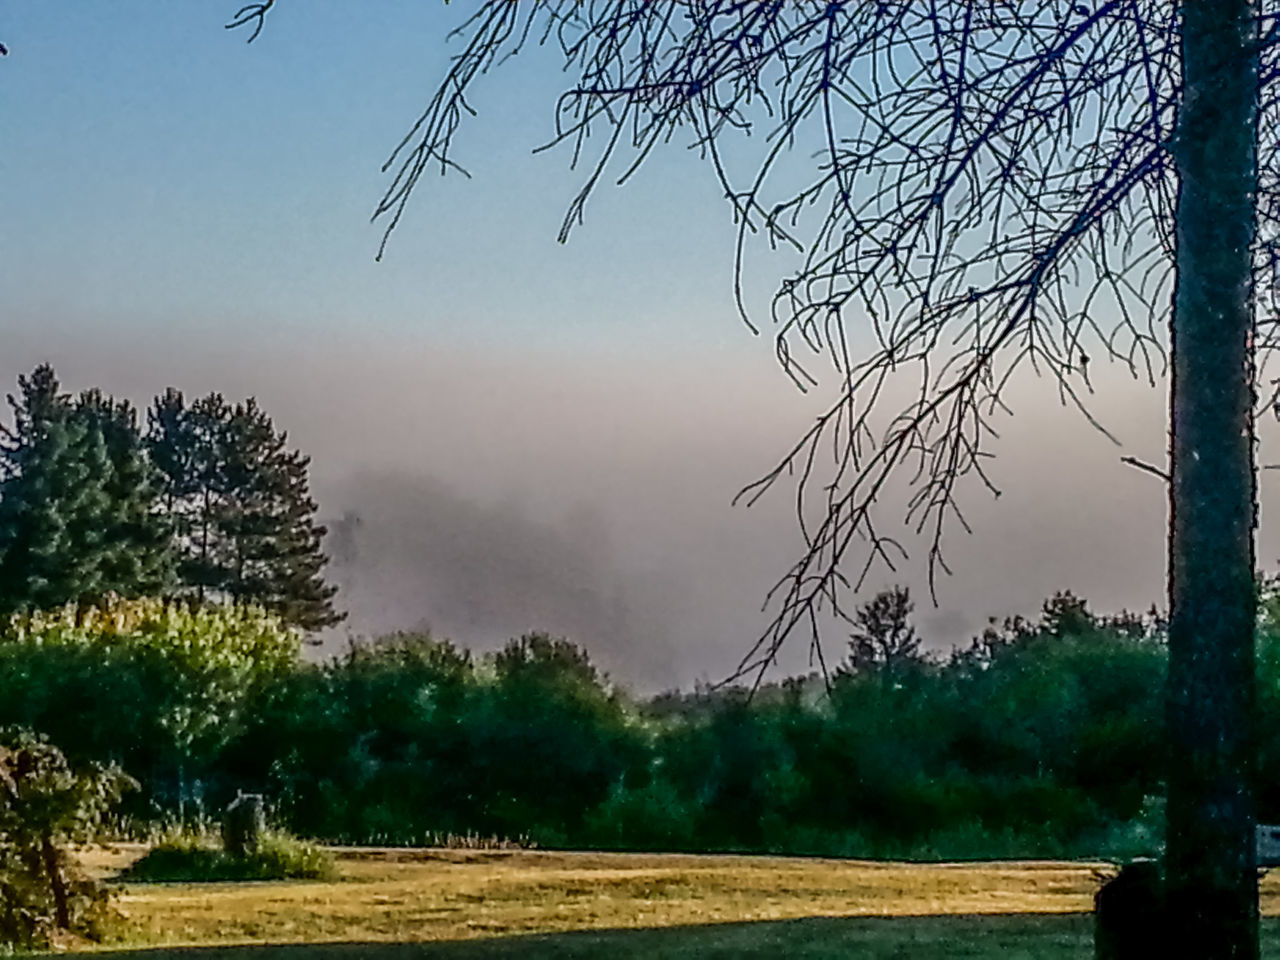 Beauty In Nature Blue Sky And Fog Day Early Morning Fog Foggy Foggy Morning Landscape Mist Misty Morning Morning Light Morning Sky Morning Sun And Fog Nature No People Outdoors Scenics Sky Summer Summertime Sunny Day Sunrise The Week On EyeEm Tree Trees And Sky